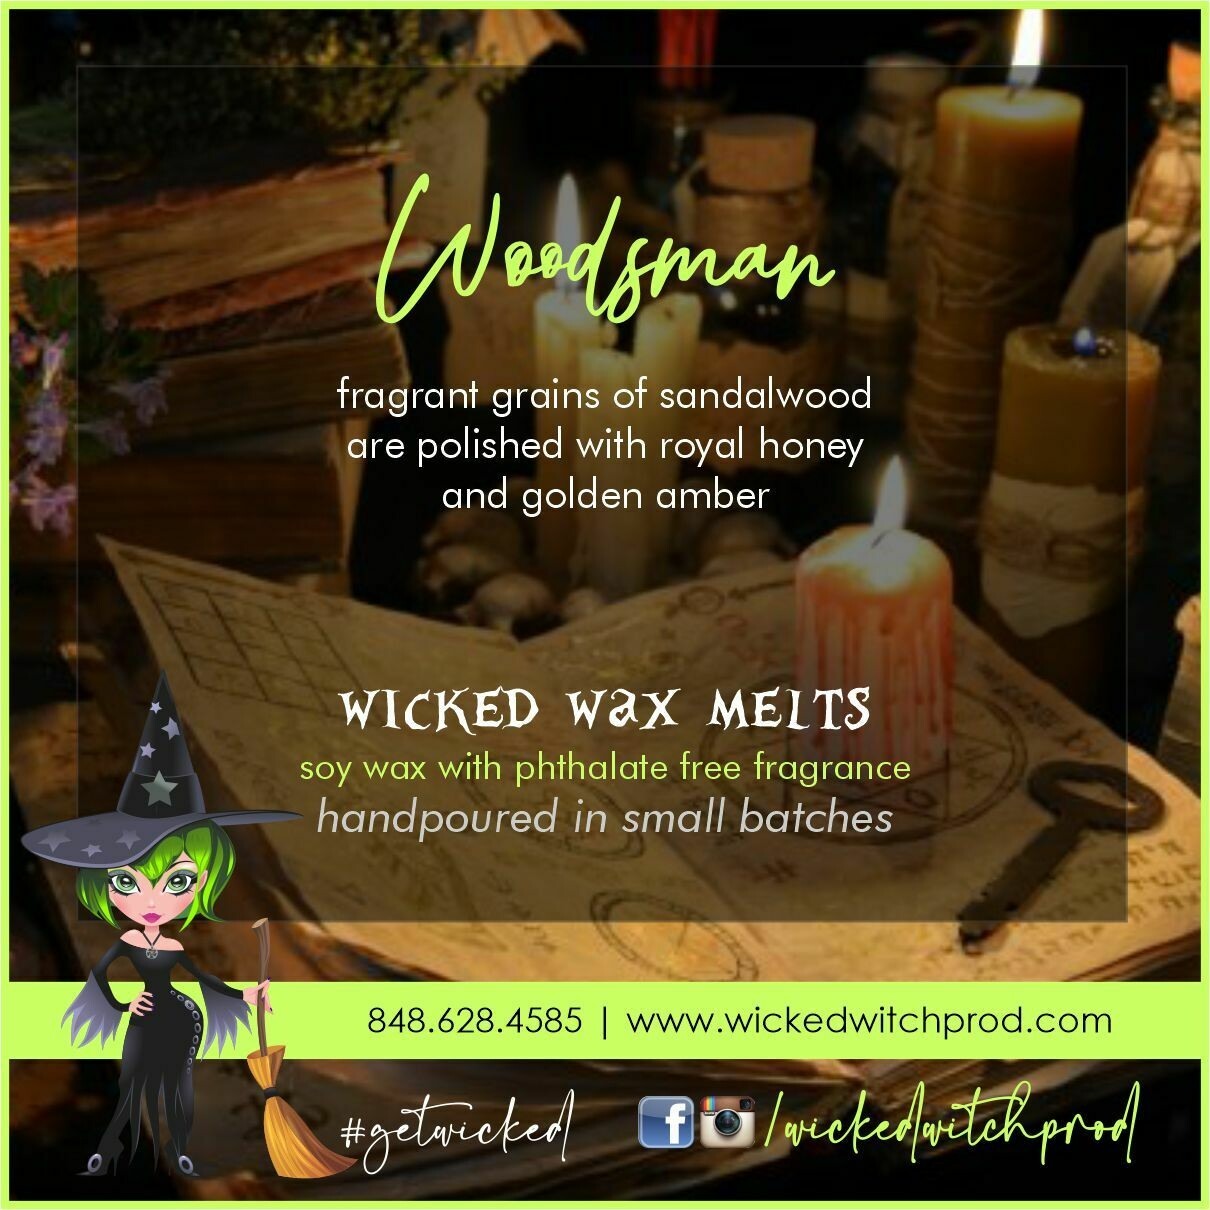 Woodsman Wicked Wax Melts